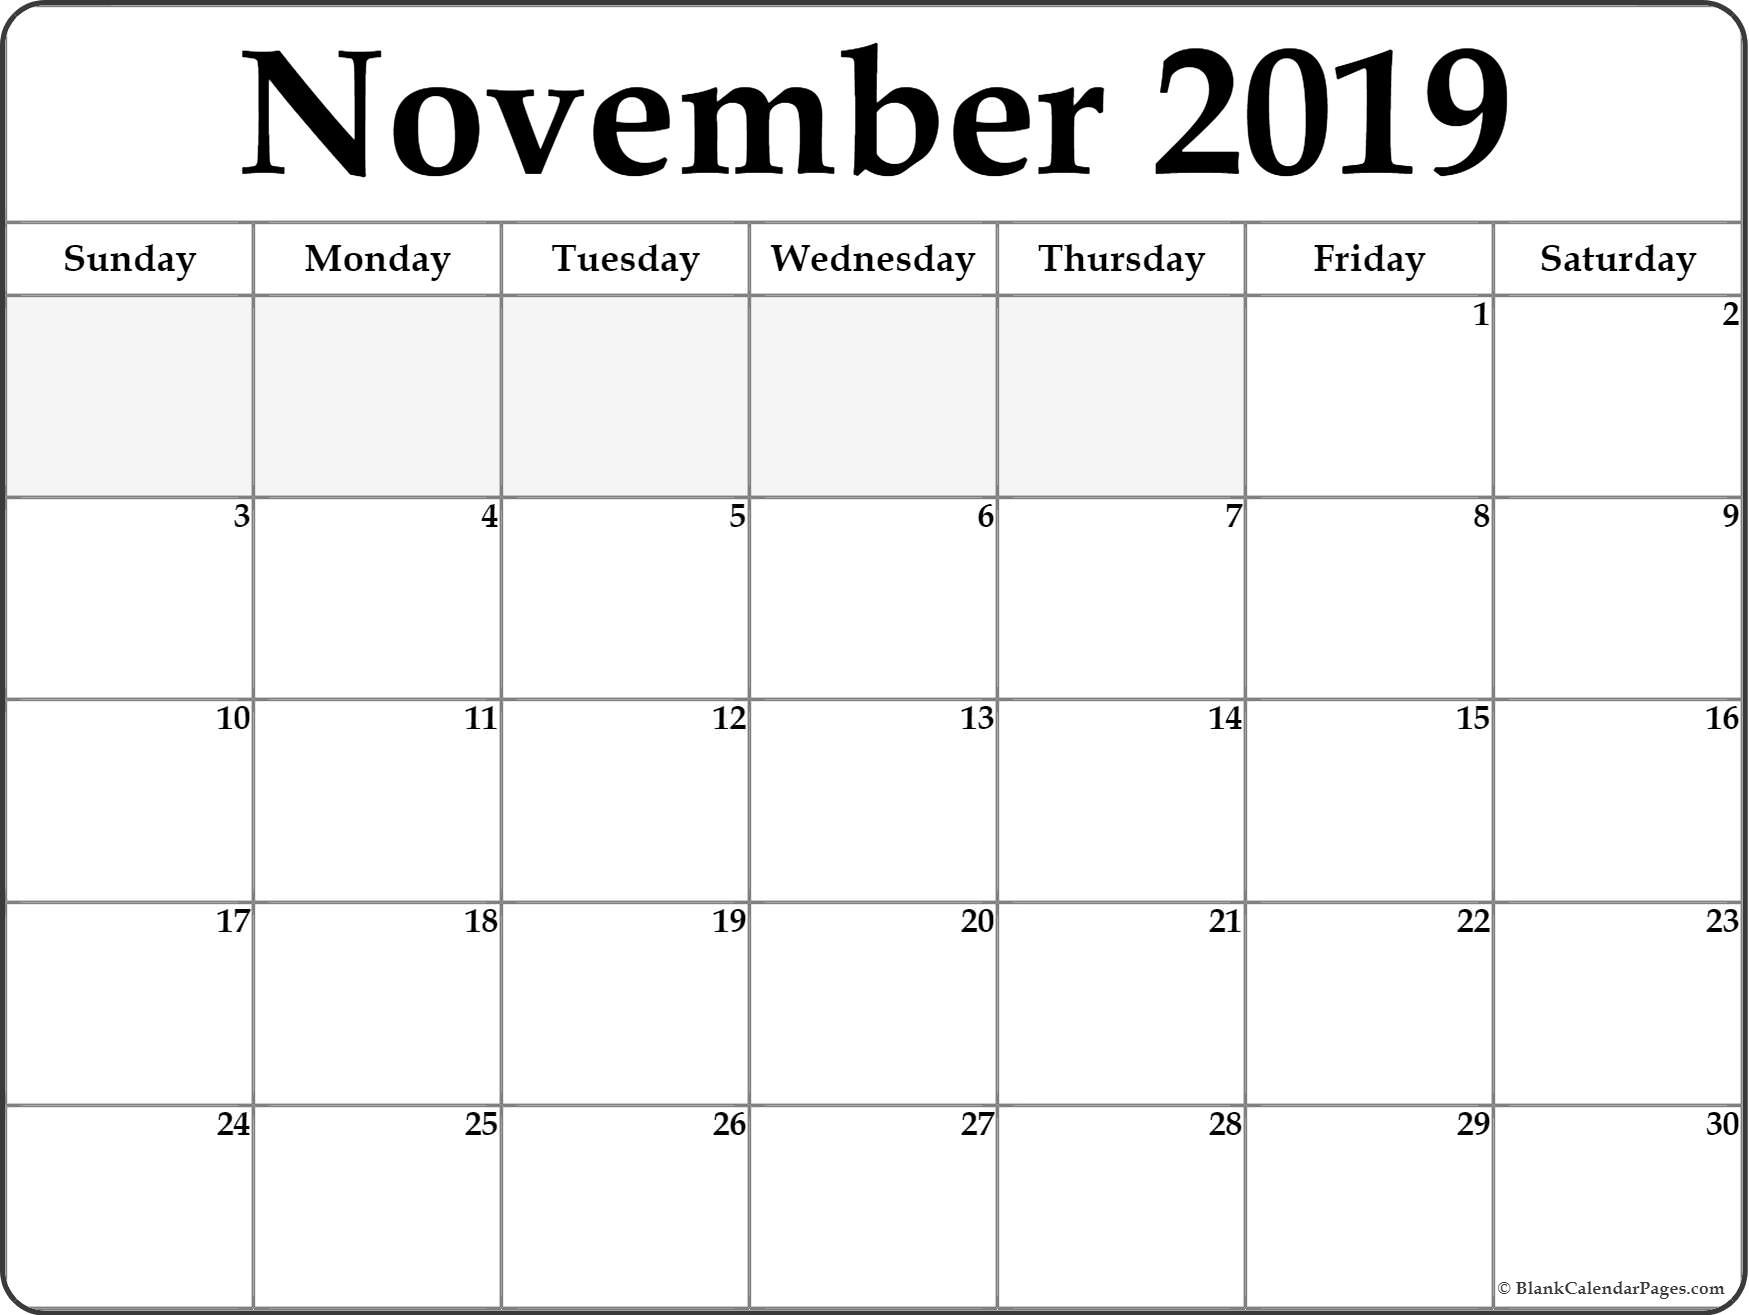 graphic regarding Nov Calendar Printable Pdf named November 2019 Calendar PDF - Cost-free Printable Calendar